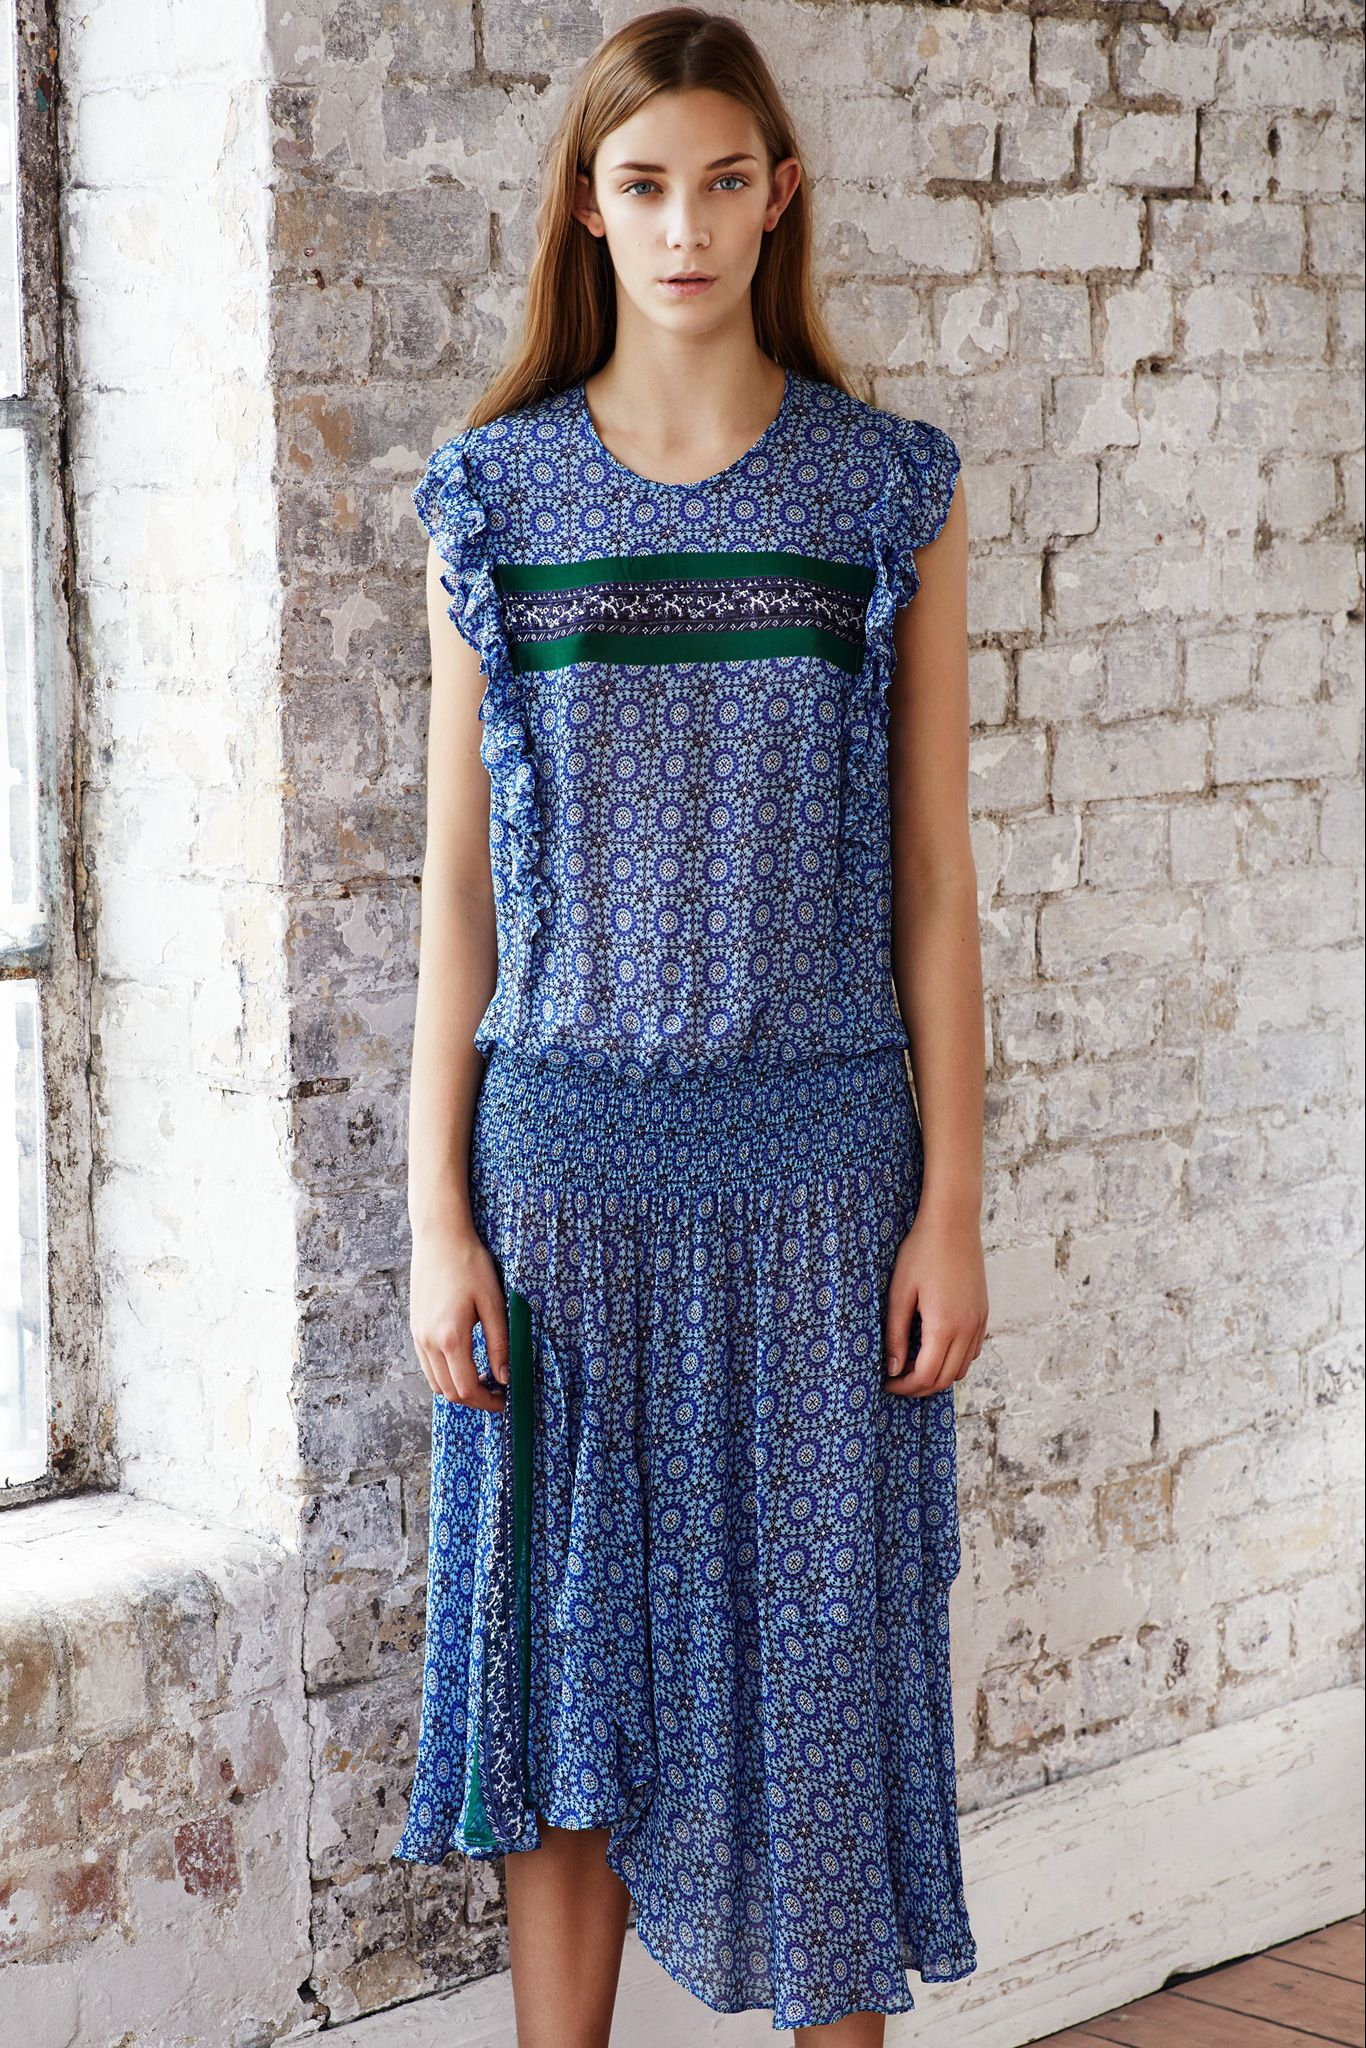 Spring 2015 Ready-to-Wear - Preen Line